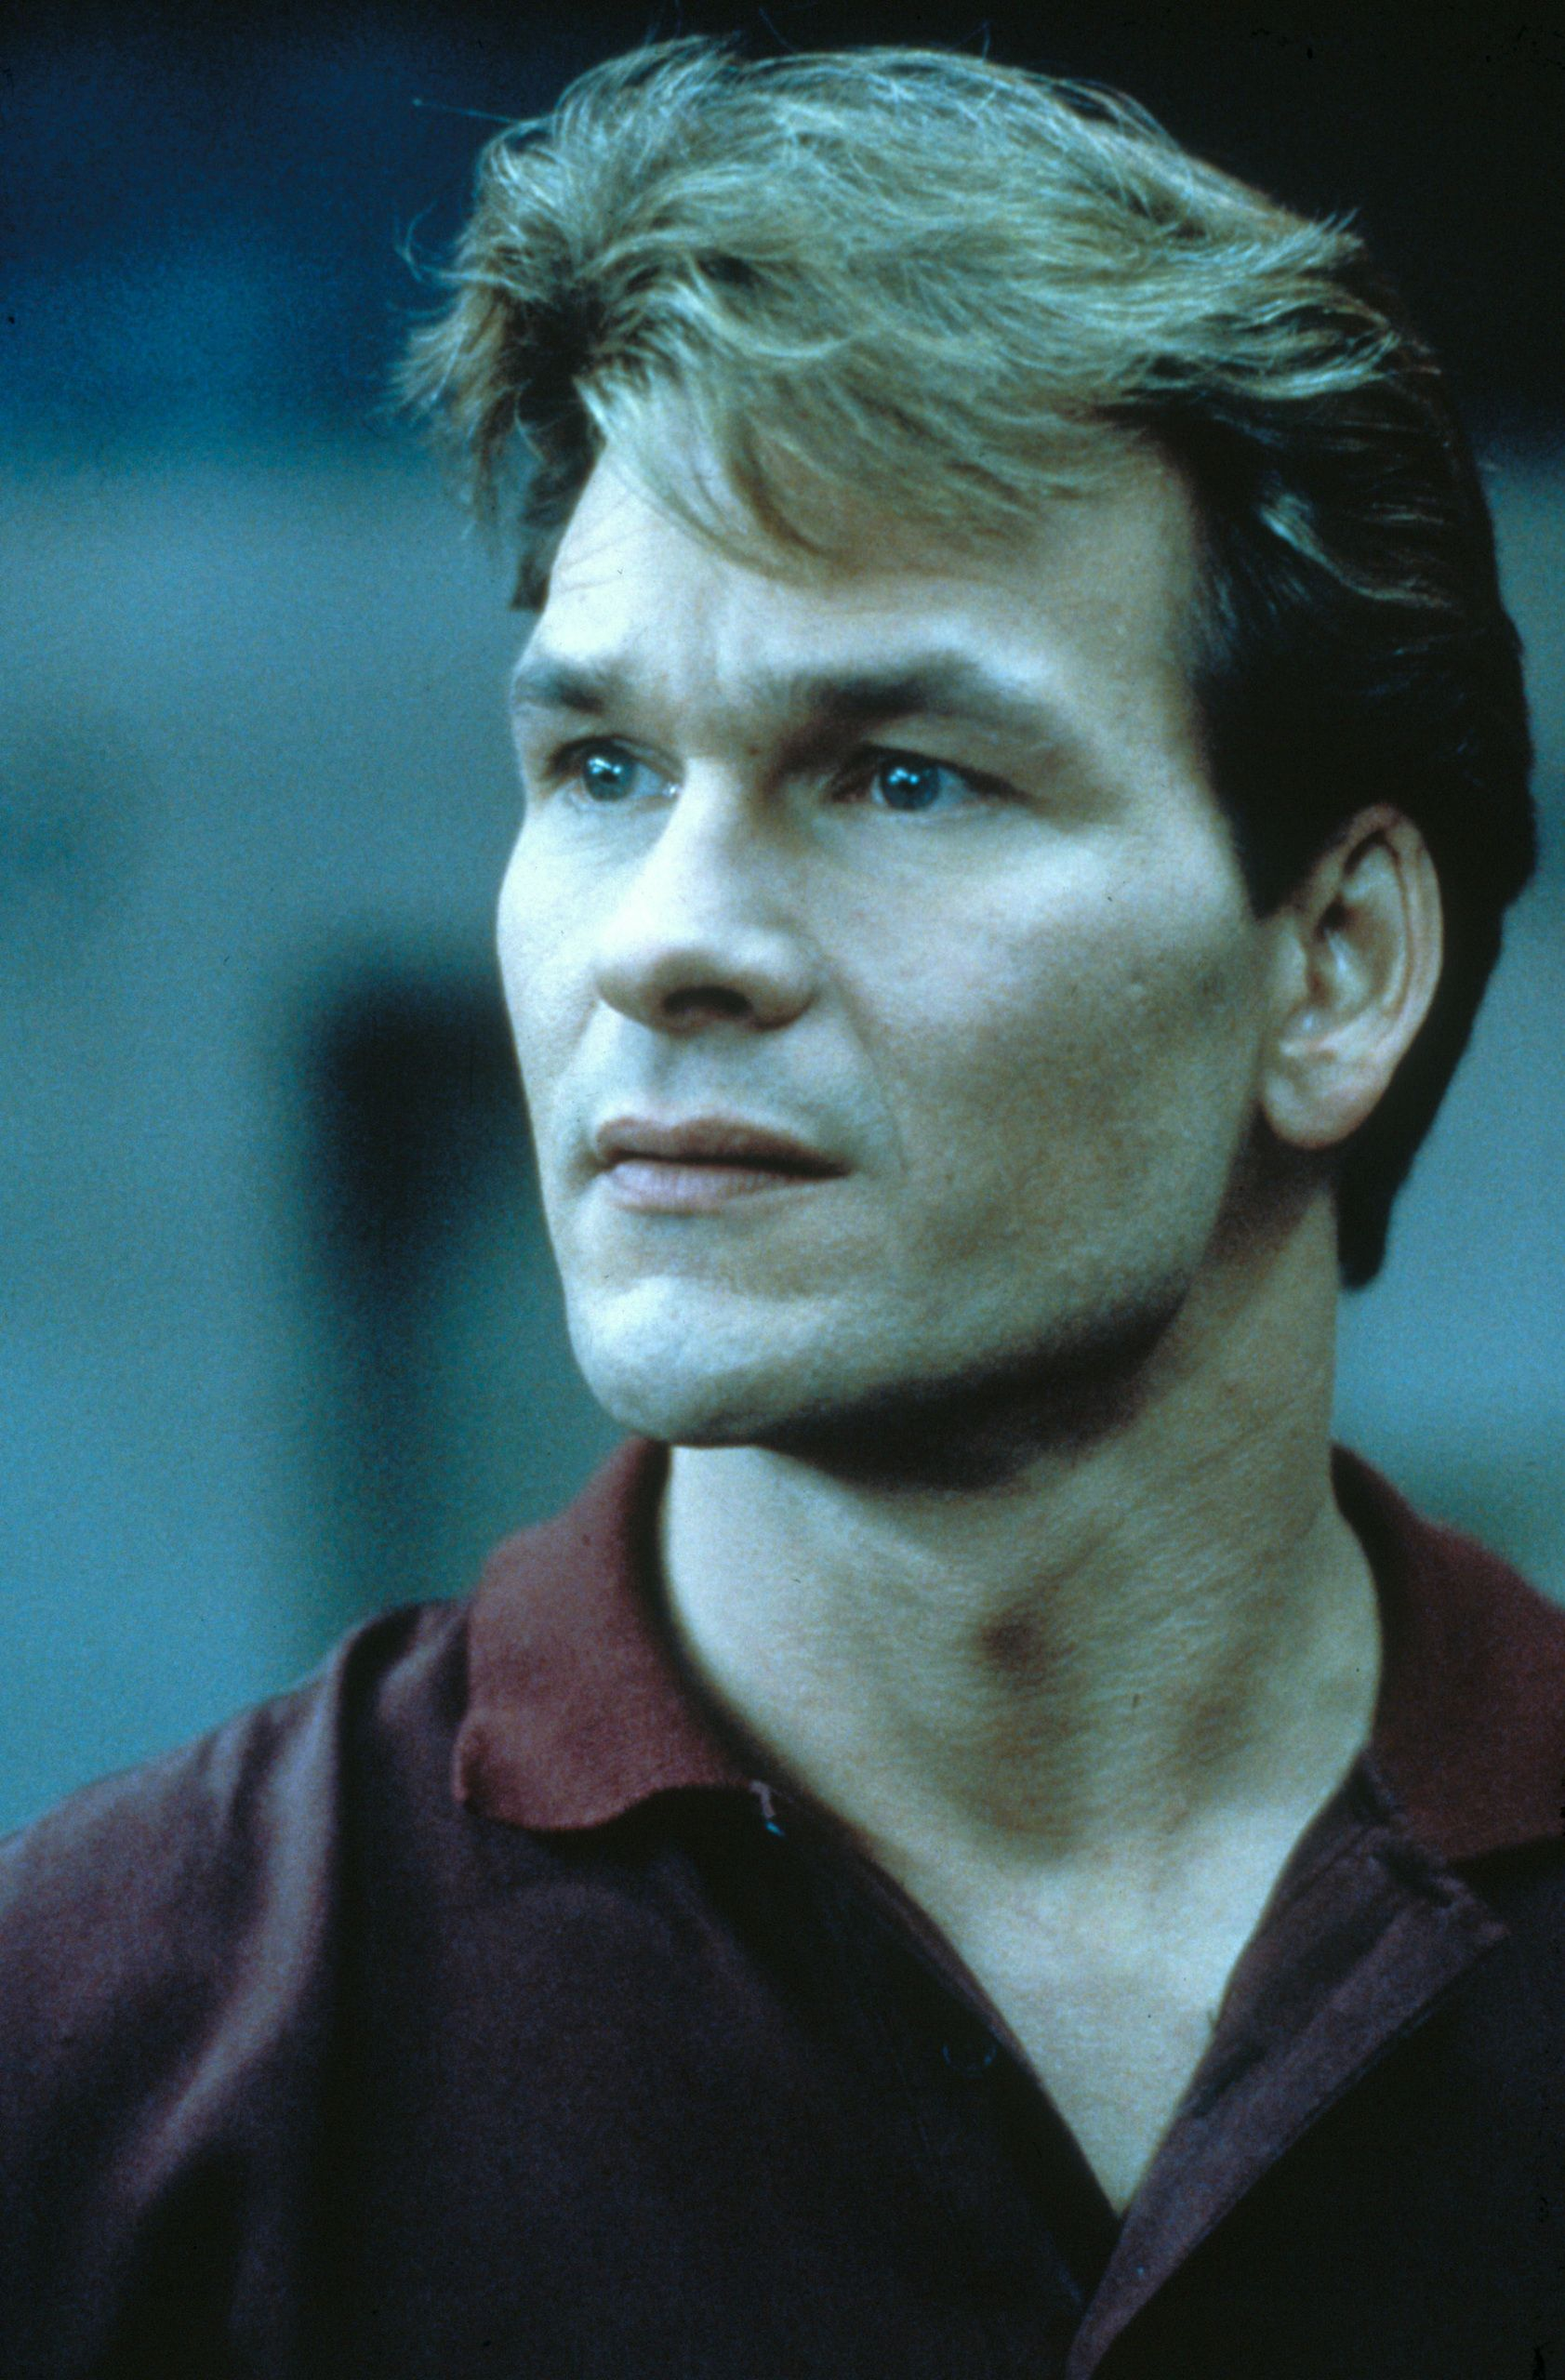 Patrick Swayze A Life In Pictures: Photo Of Ghost For Fans Of Patrick Swayze.